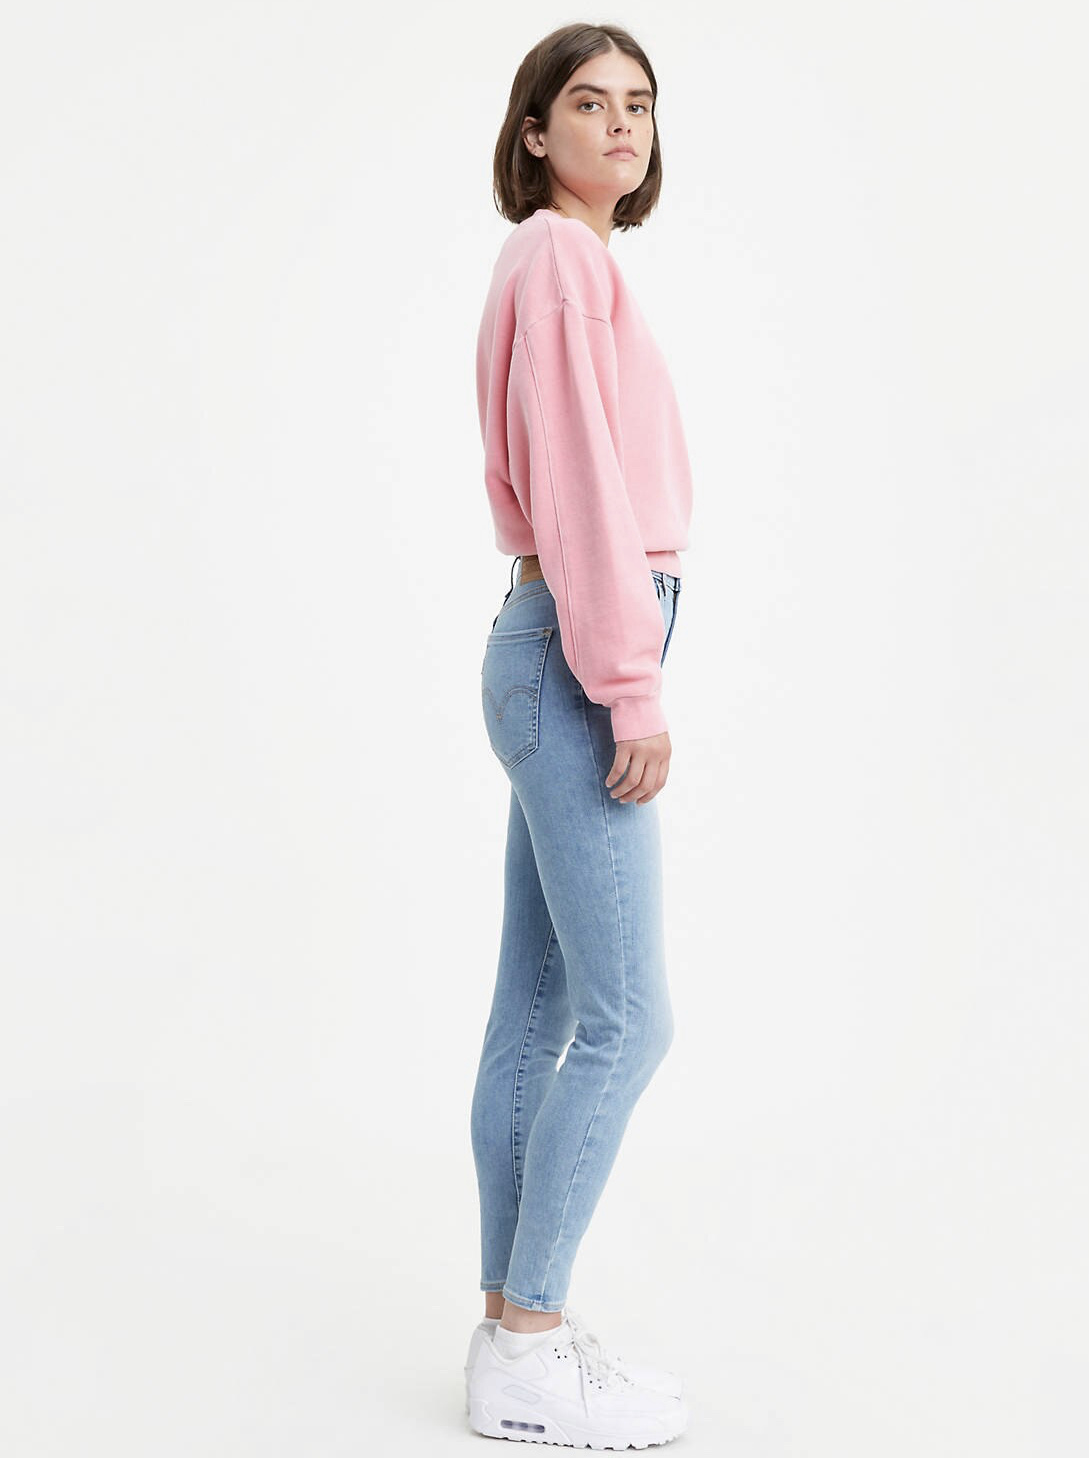 Levi's Mile High Super Skinny - Between Space And Time